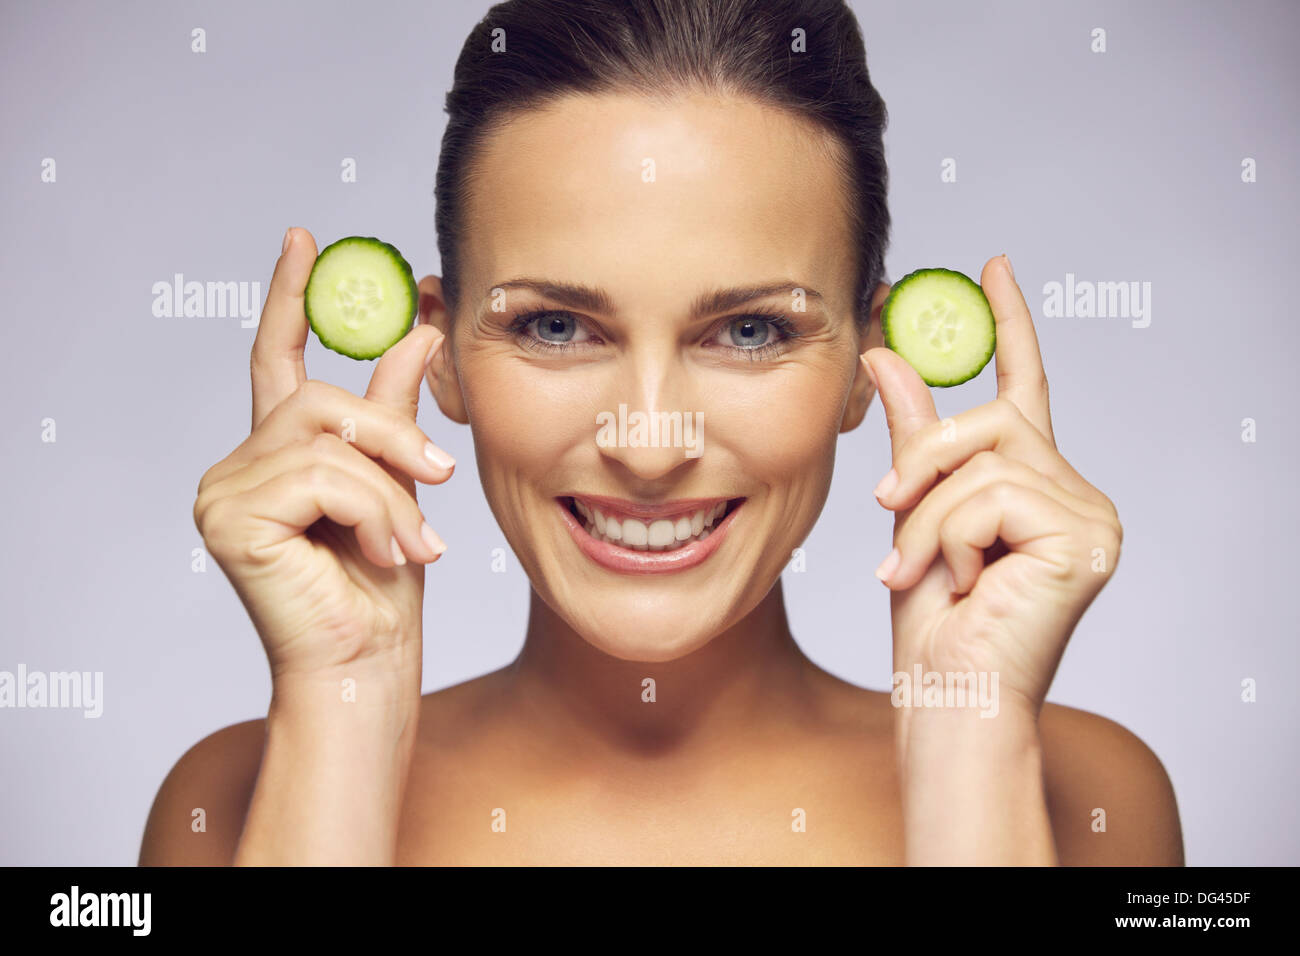 Portrait of young beautiful woman holding cucumber slices in hands near her face smiling at camera on gray background. - Stock Image